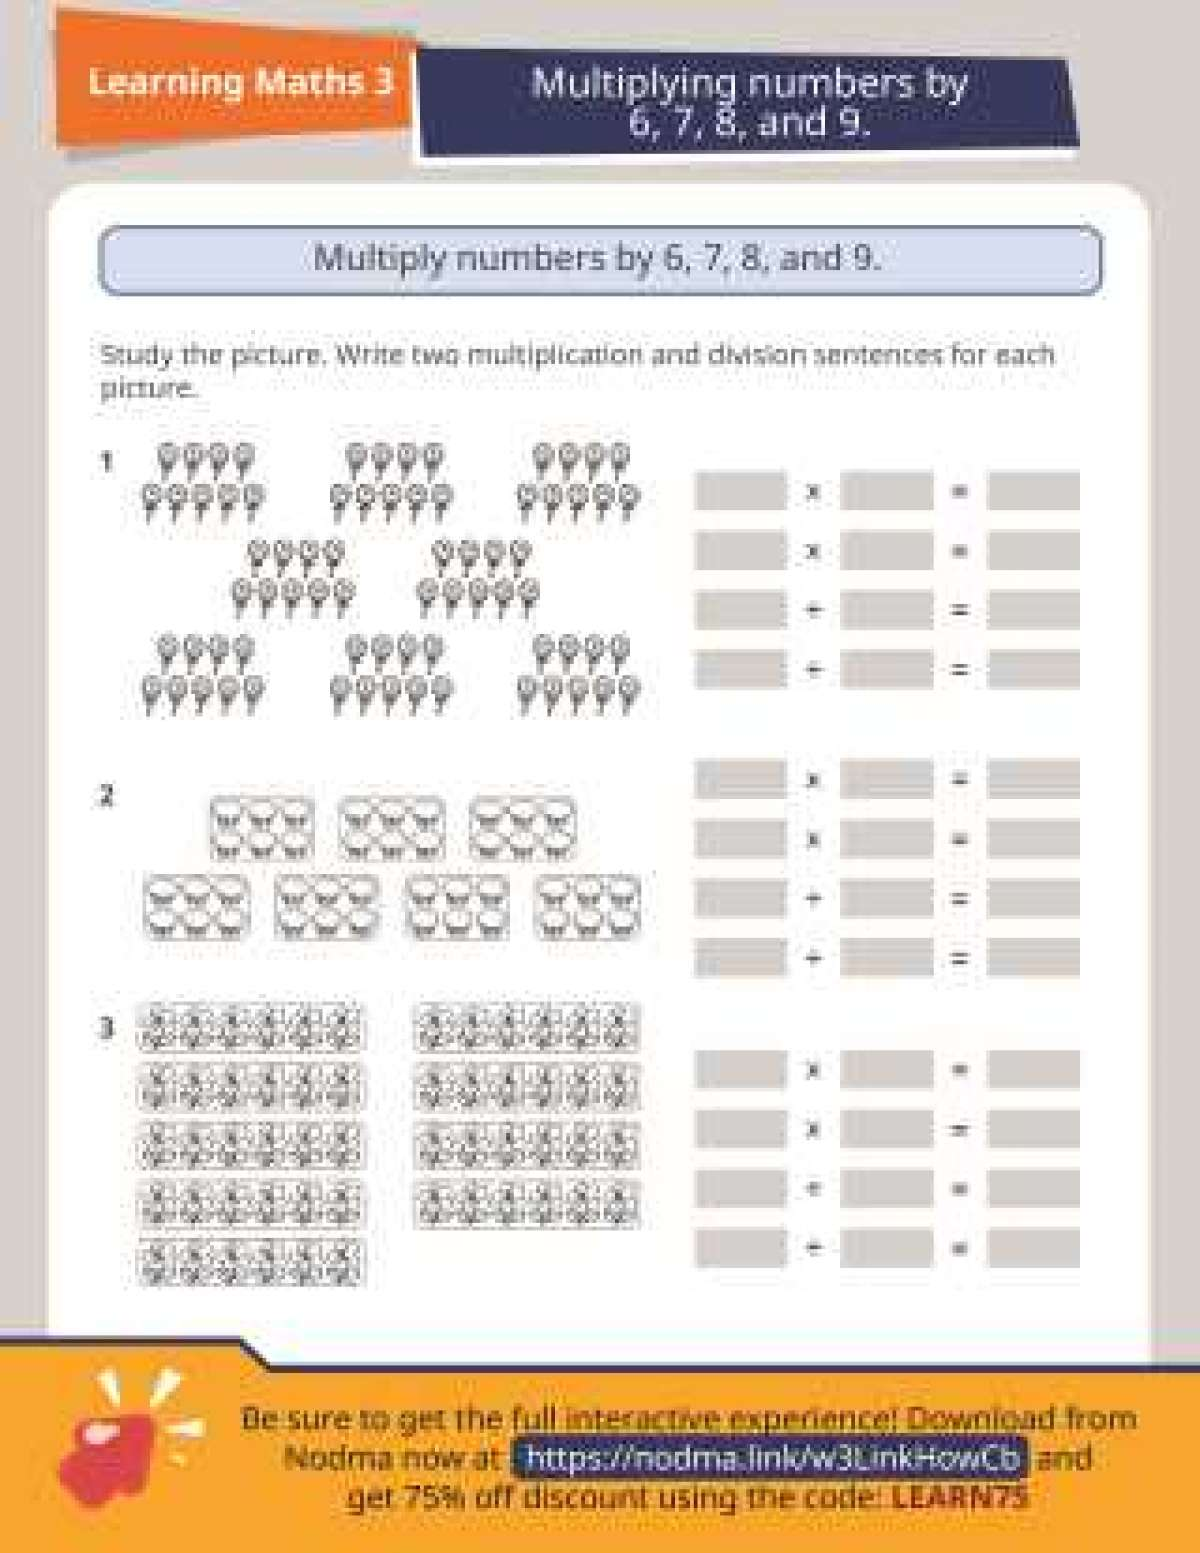 3rd Grade Math: Multiply and Divide by 6, 7, 8 and 9